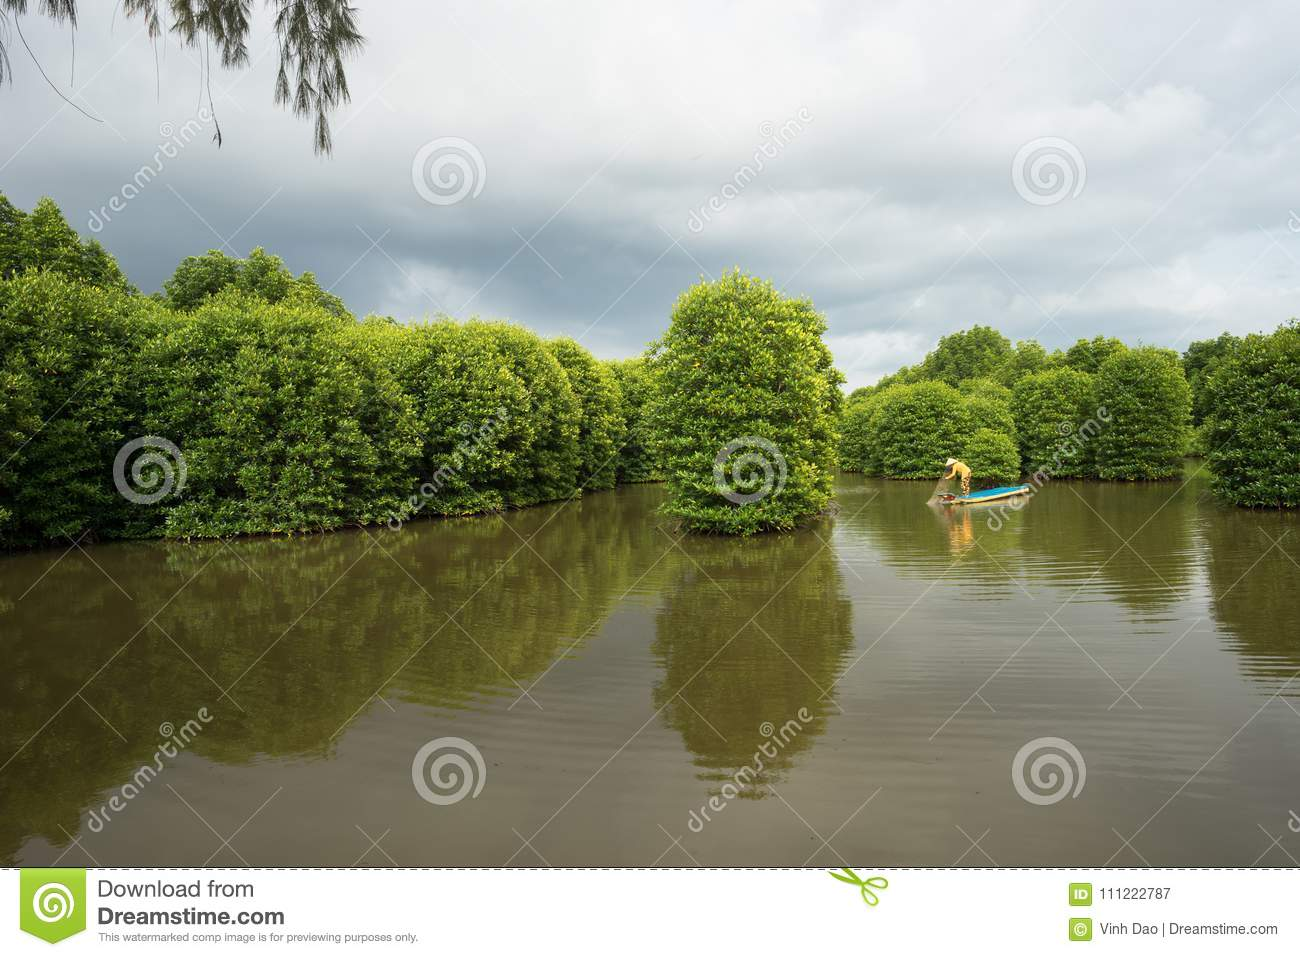 Mangrove forest with fishing boat in Ca Mau province, Mekong delta, south of Vietnam